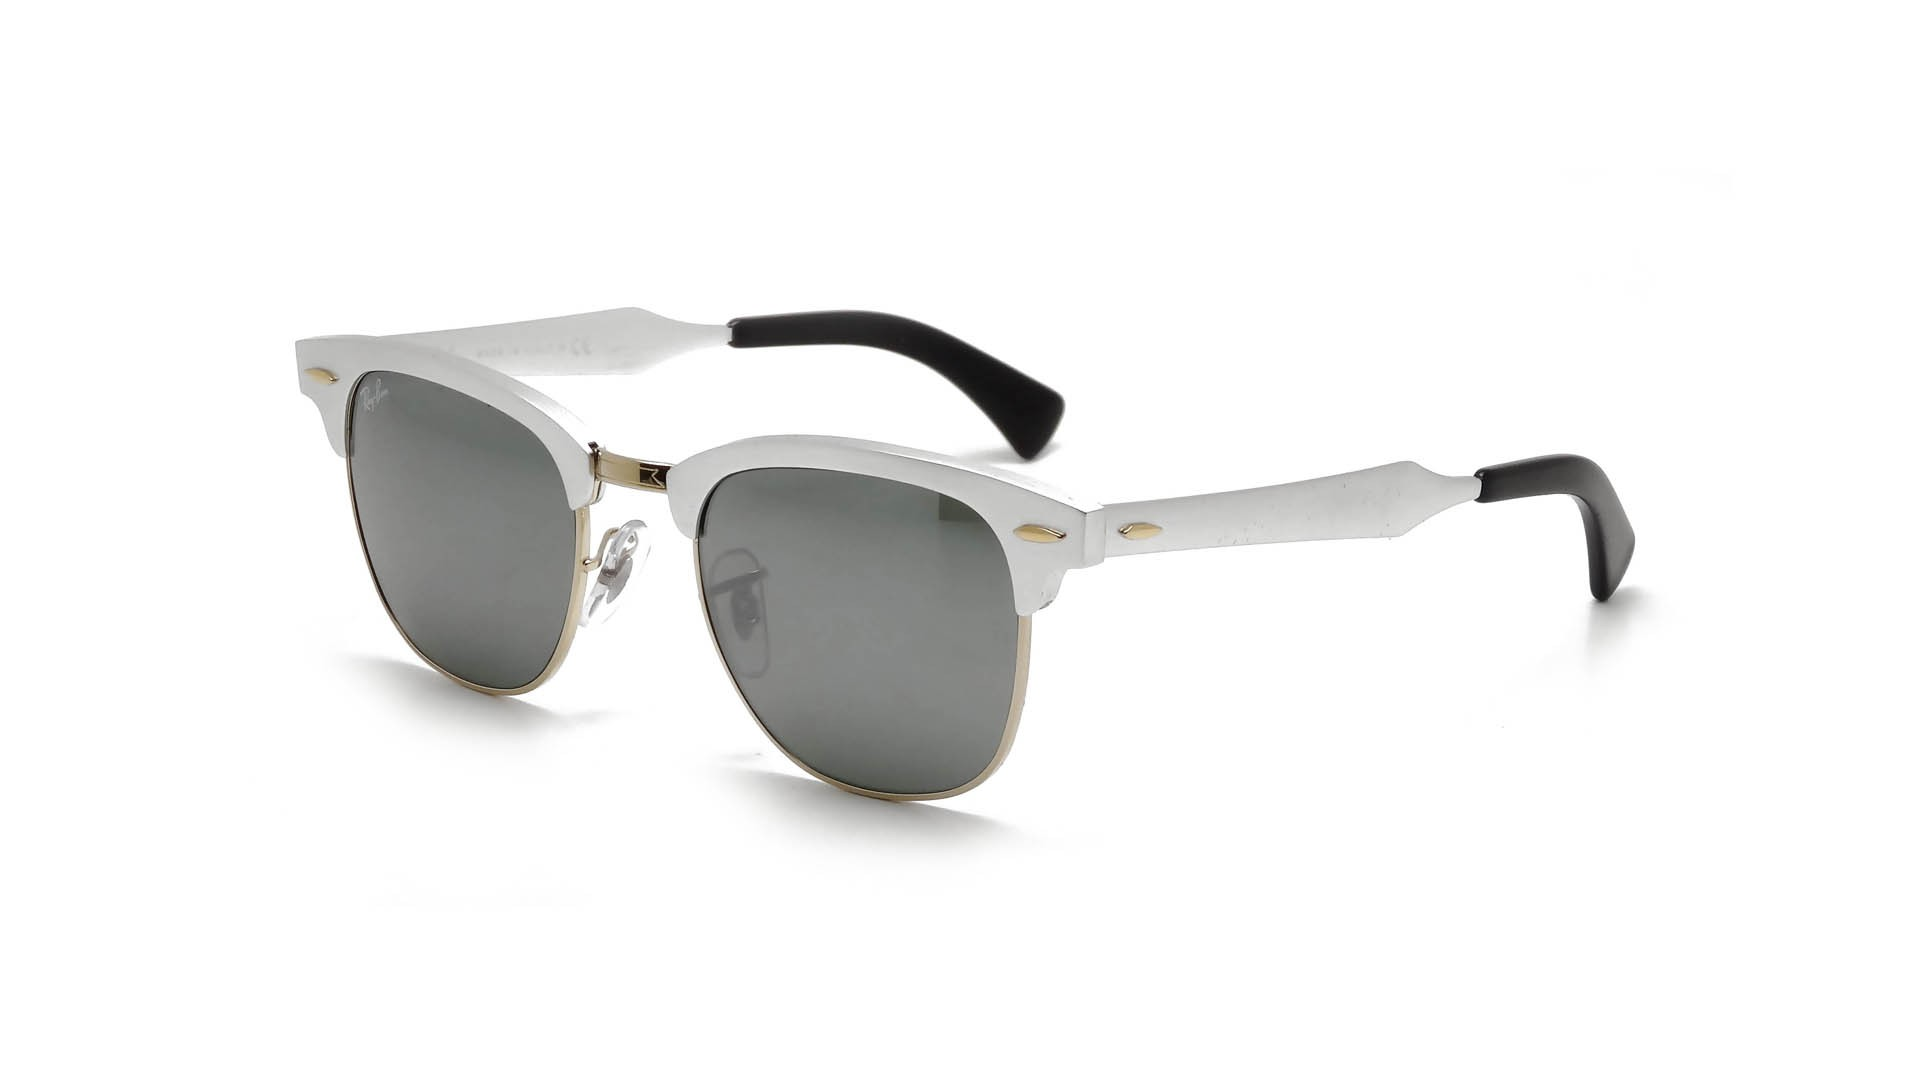 ray ban clubmaster silver gold  Ray-Ban Clubmaster Sunglasses for men and women